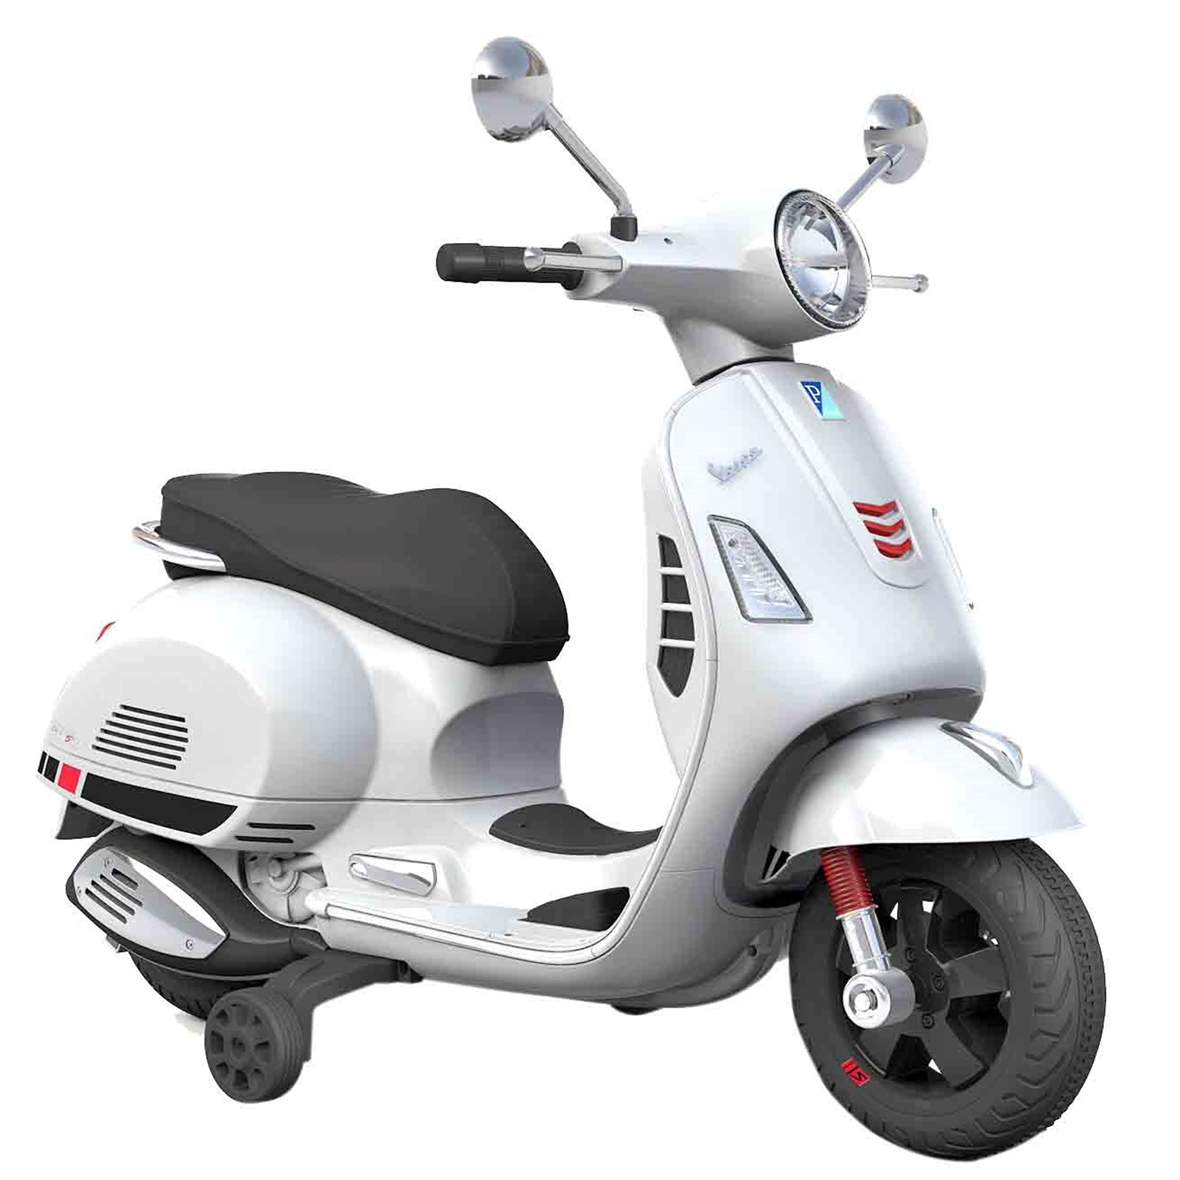 Product Image for 'Kid's Scooter Vespa GTS electric 12VTitle'